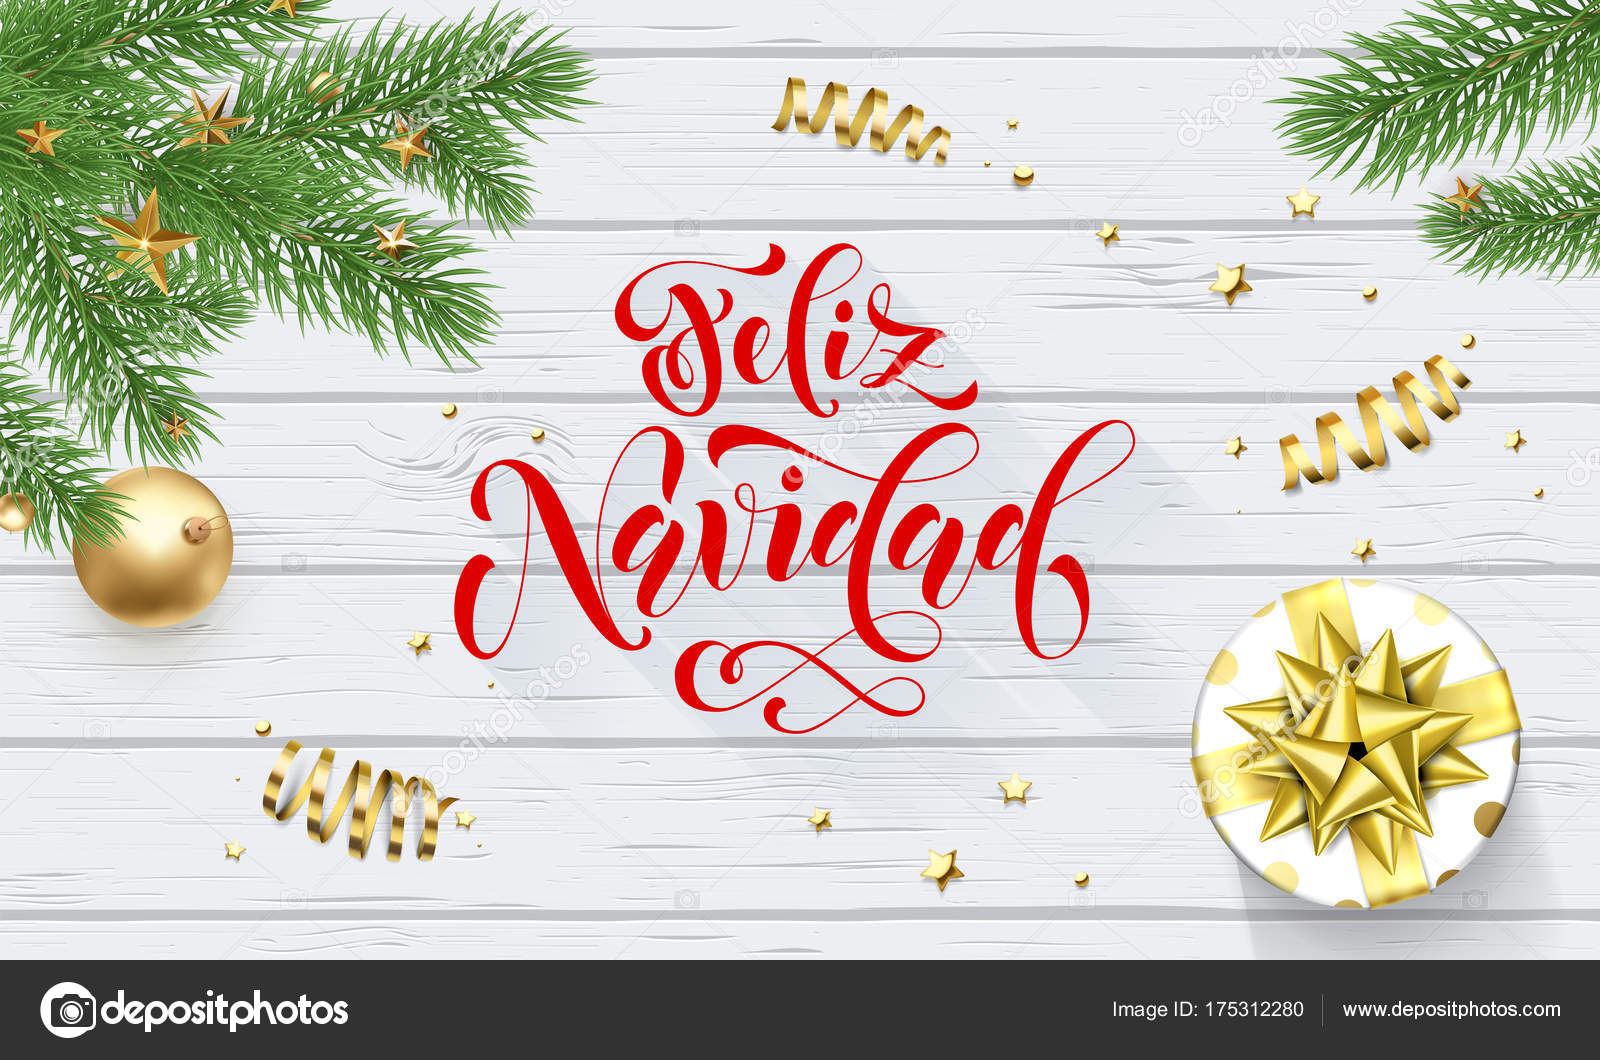 Buon Natale In Spagnolo.Feliz Navidad Spanish Merry Christmas Holiday Golden Decoration On Xmas Tree Calligraphy Font For Greeting Card White Wooden Background Vector Christmas Or New Year Golden Shiny Gift Confetti Design Vector Image